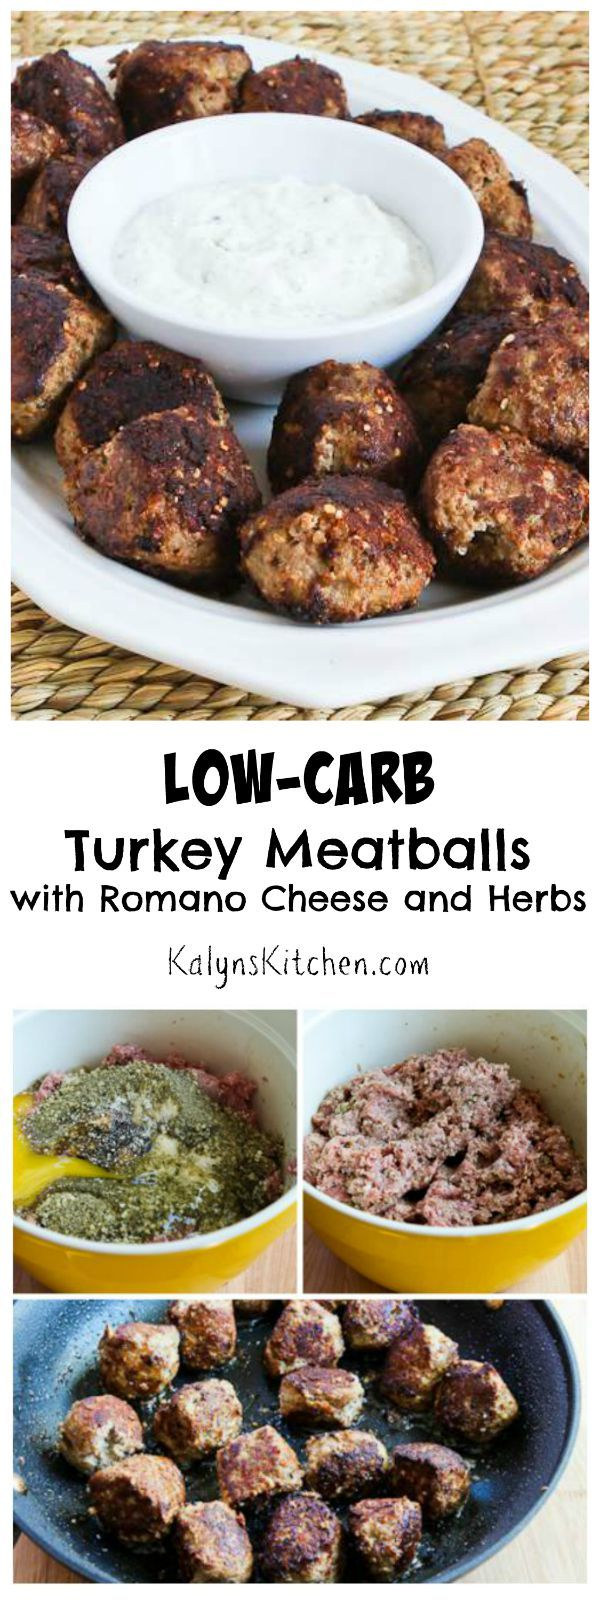 Low-Carb Turkey Meatballs with Romano Cheese and Herbs